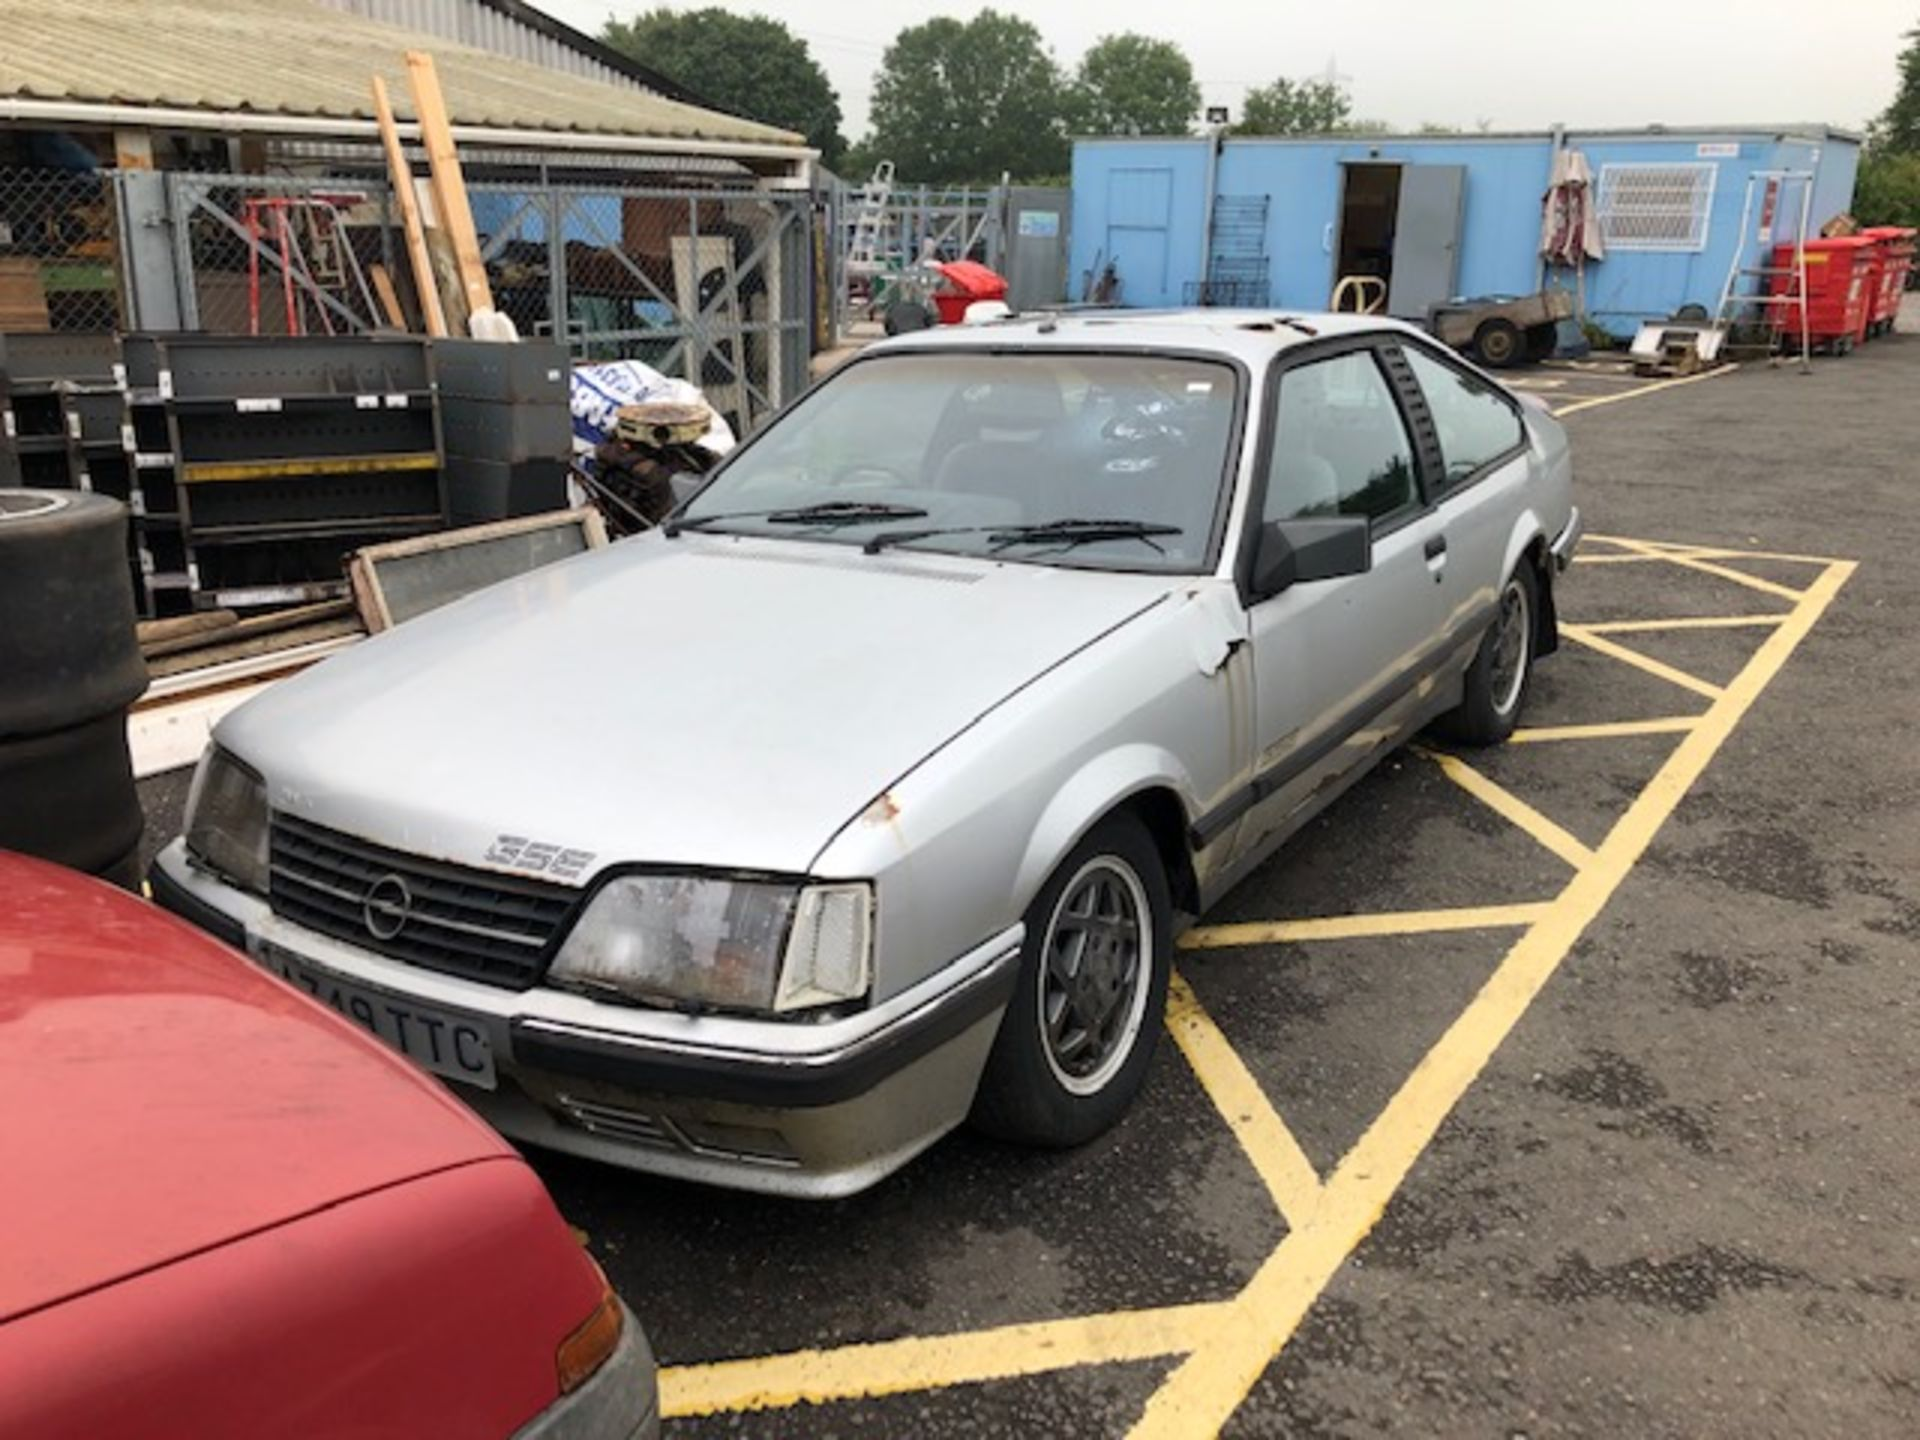 Lot 3 - Silver Opel Monza GSE Reg No A749 TTC. Rusted through in many panels including roof, wing, doors